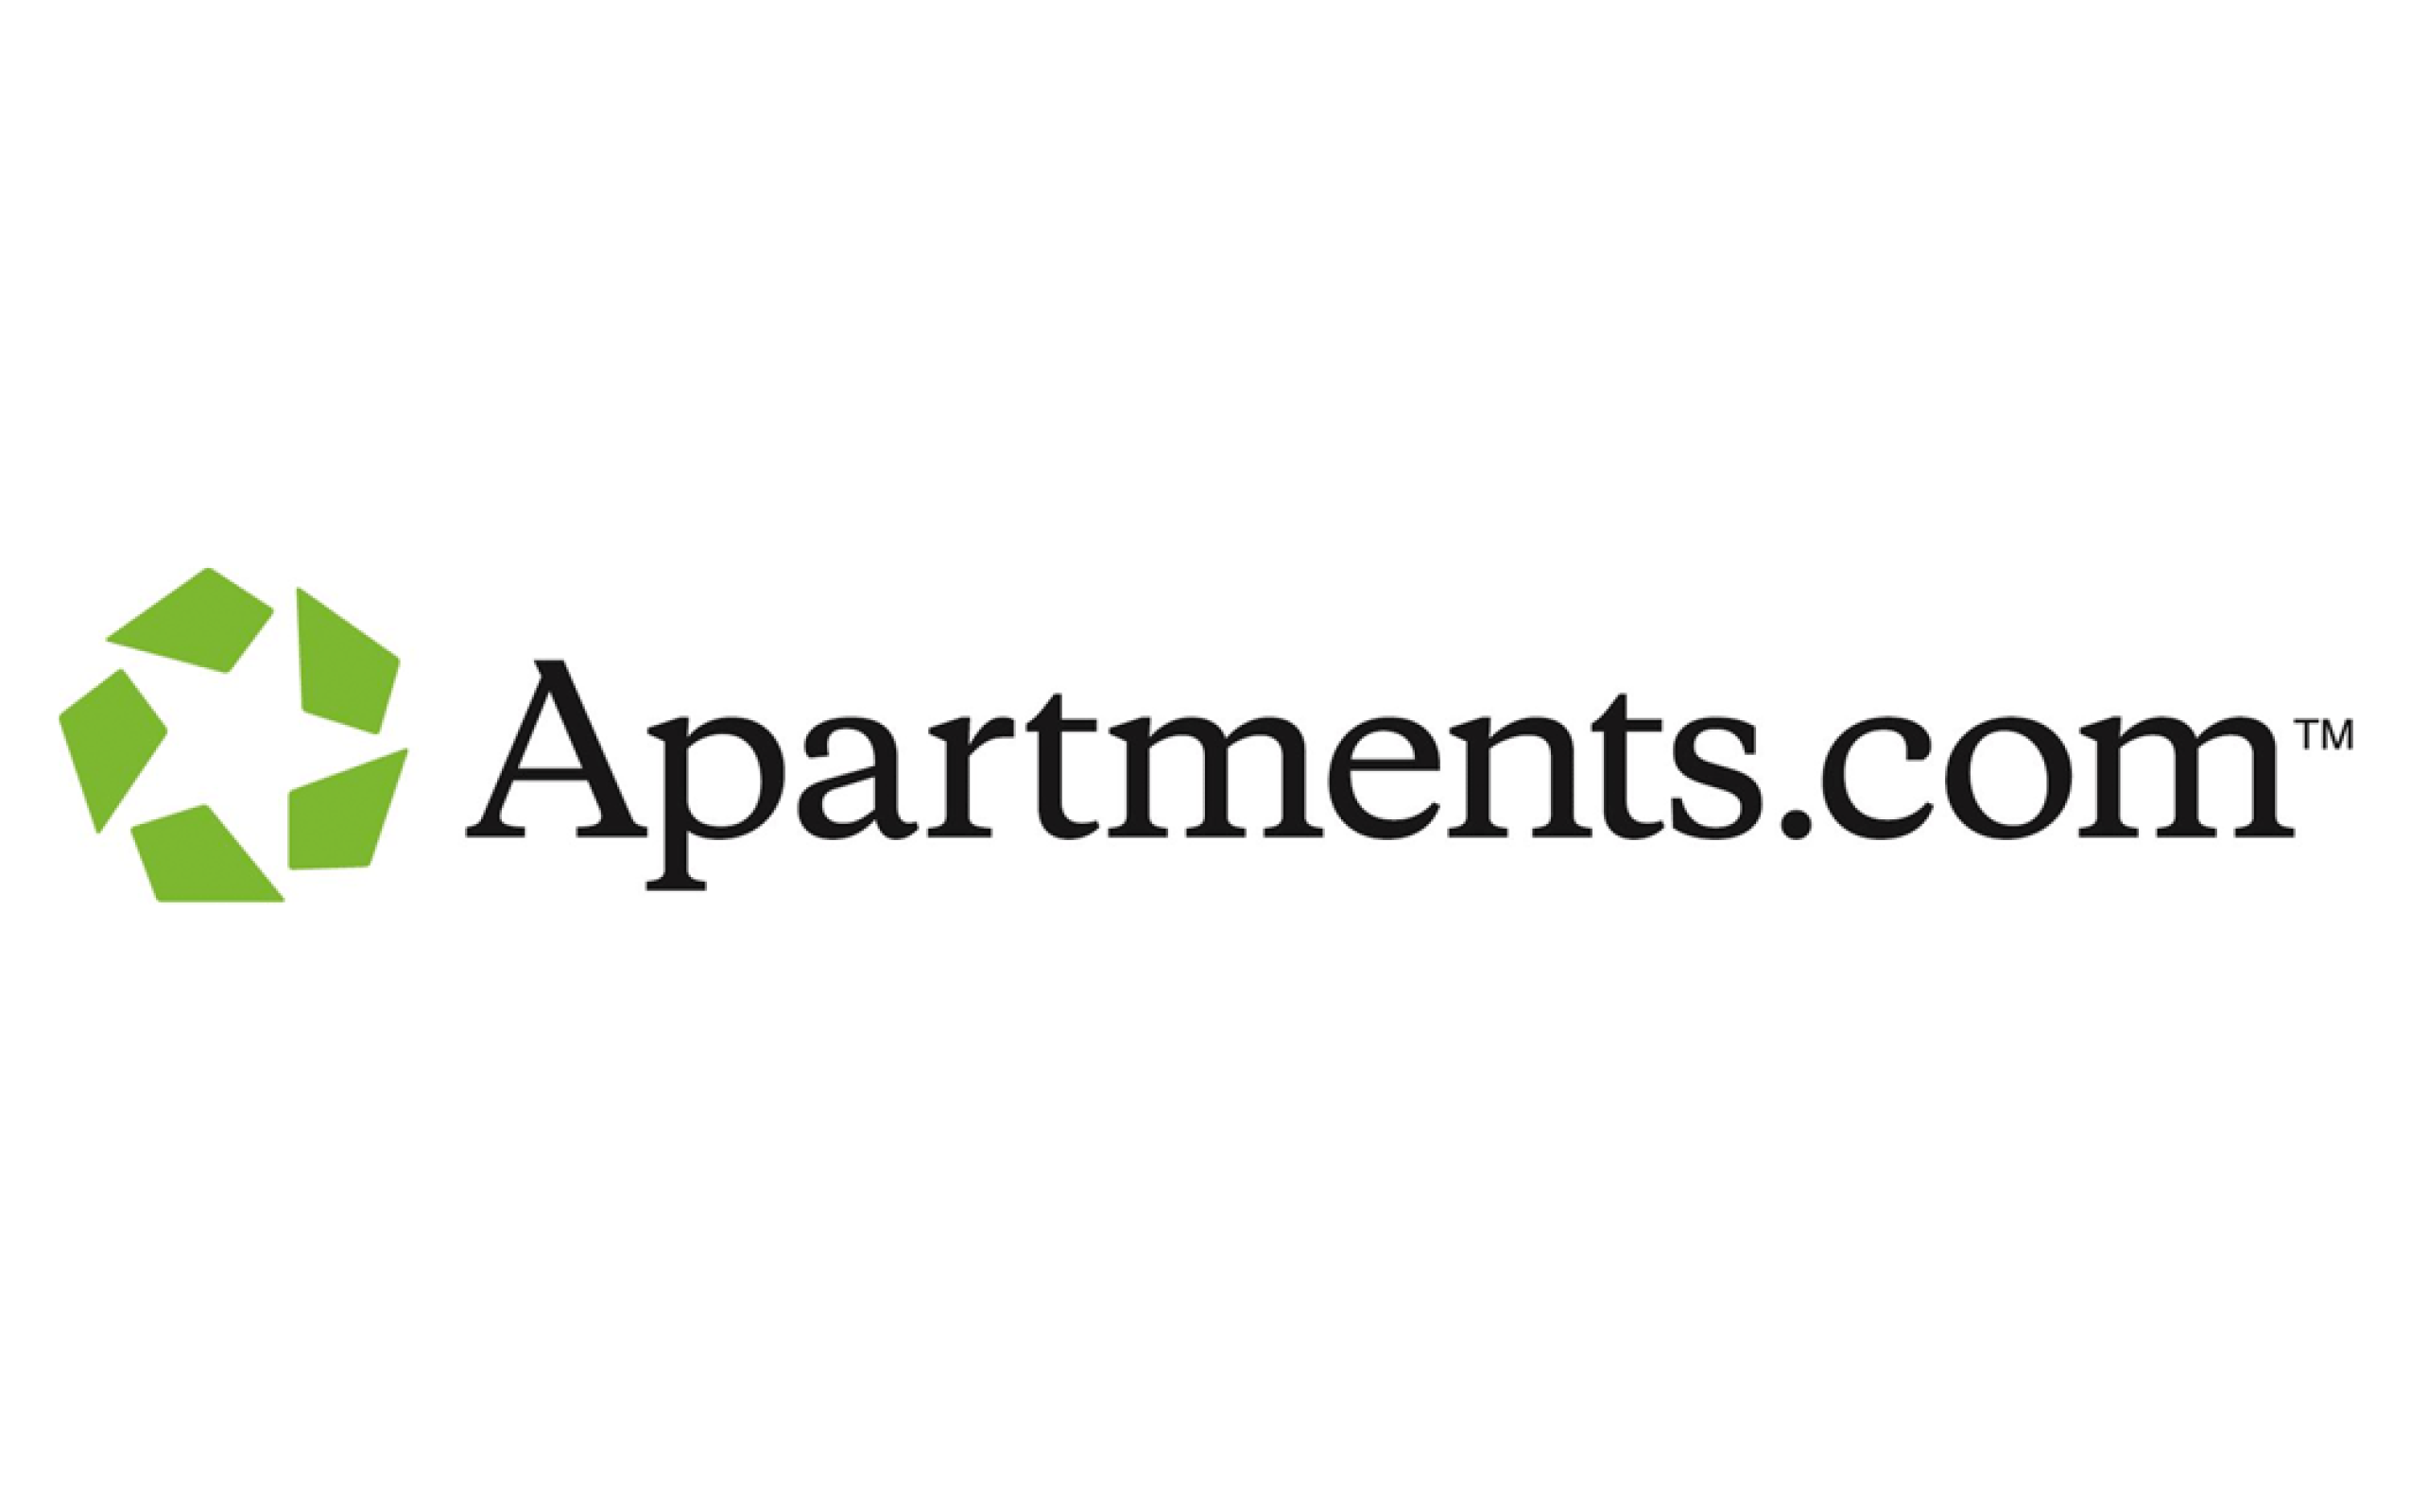 Apartments.com – 2.5x ROAS with Dynamic Ads for Instagram